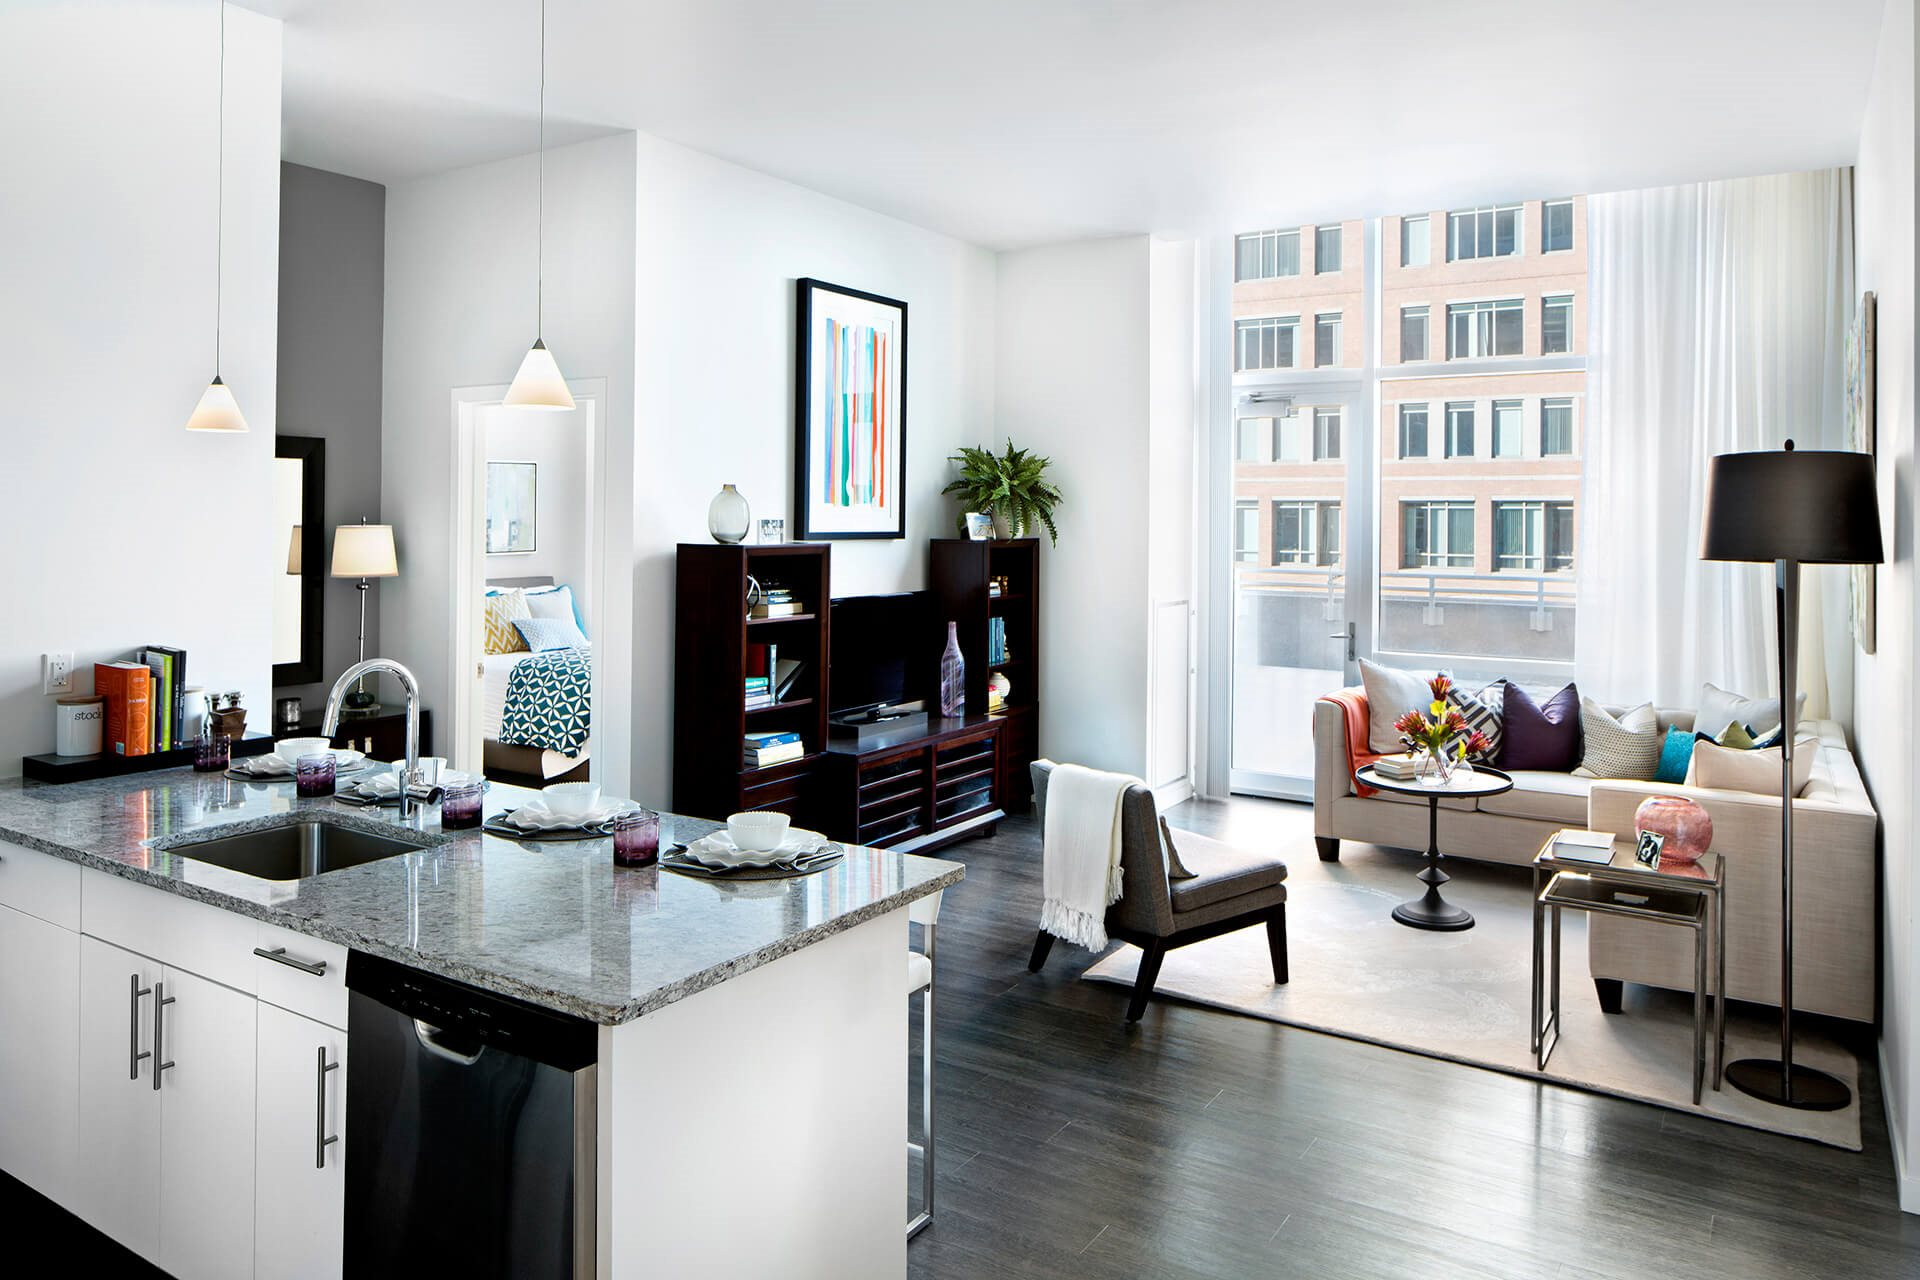 Abundant Natural Light in Apartments at Waterside Place by Windsor, 505 Congress S, Boston